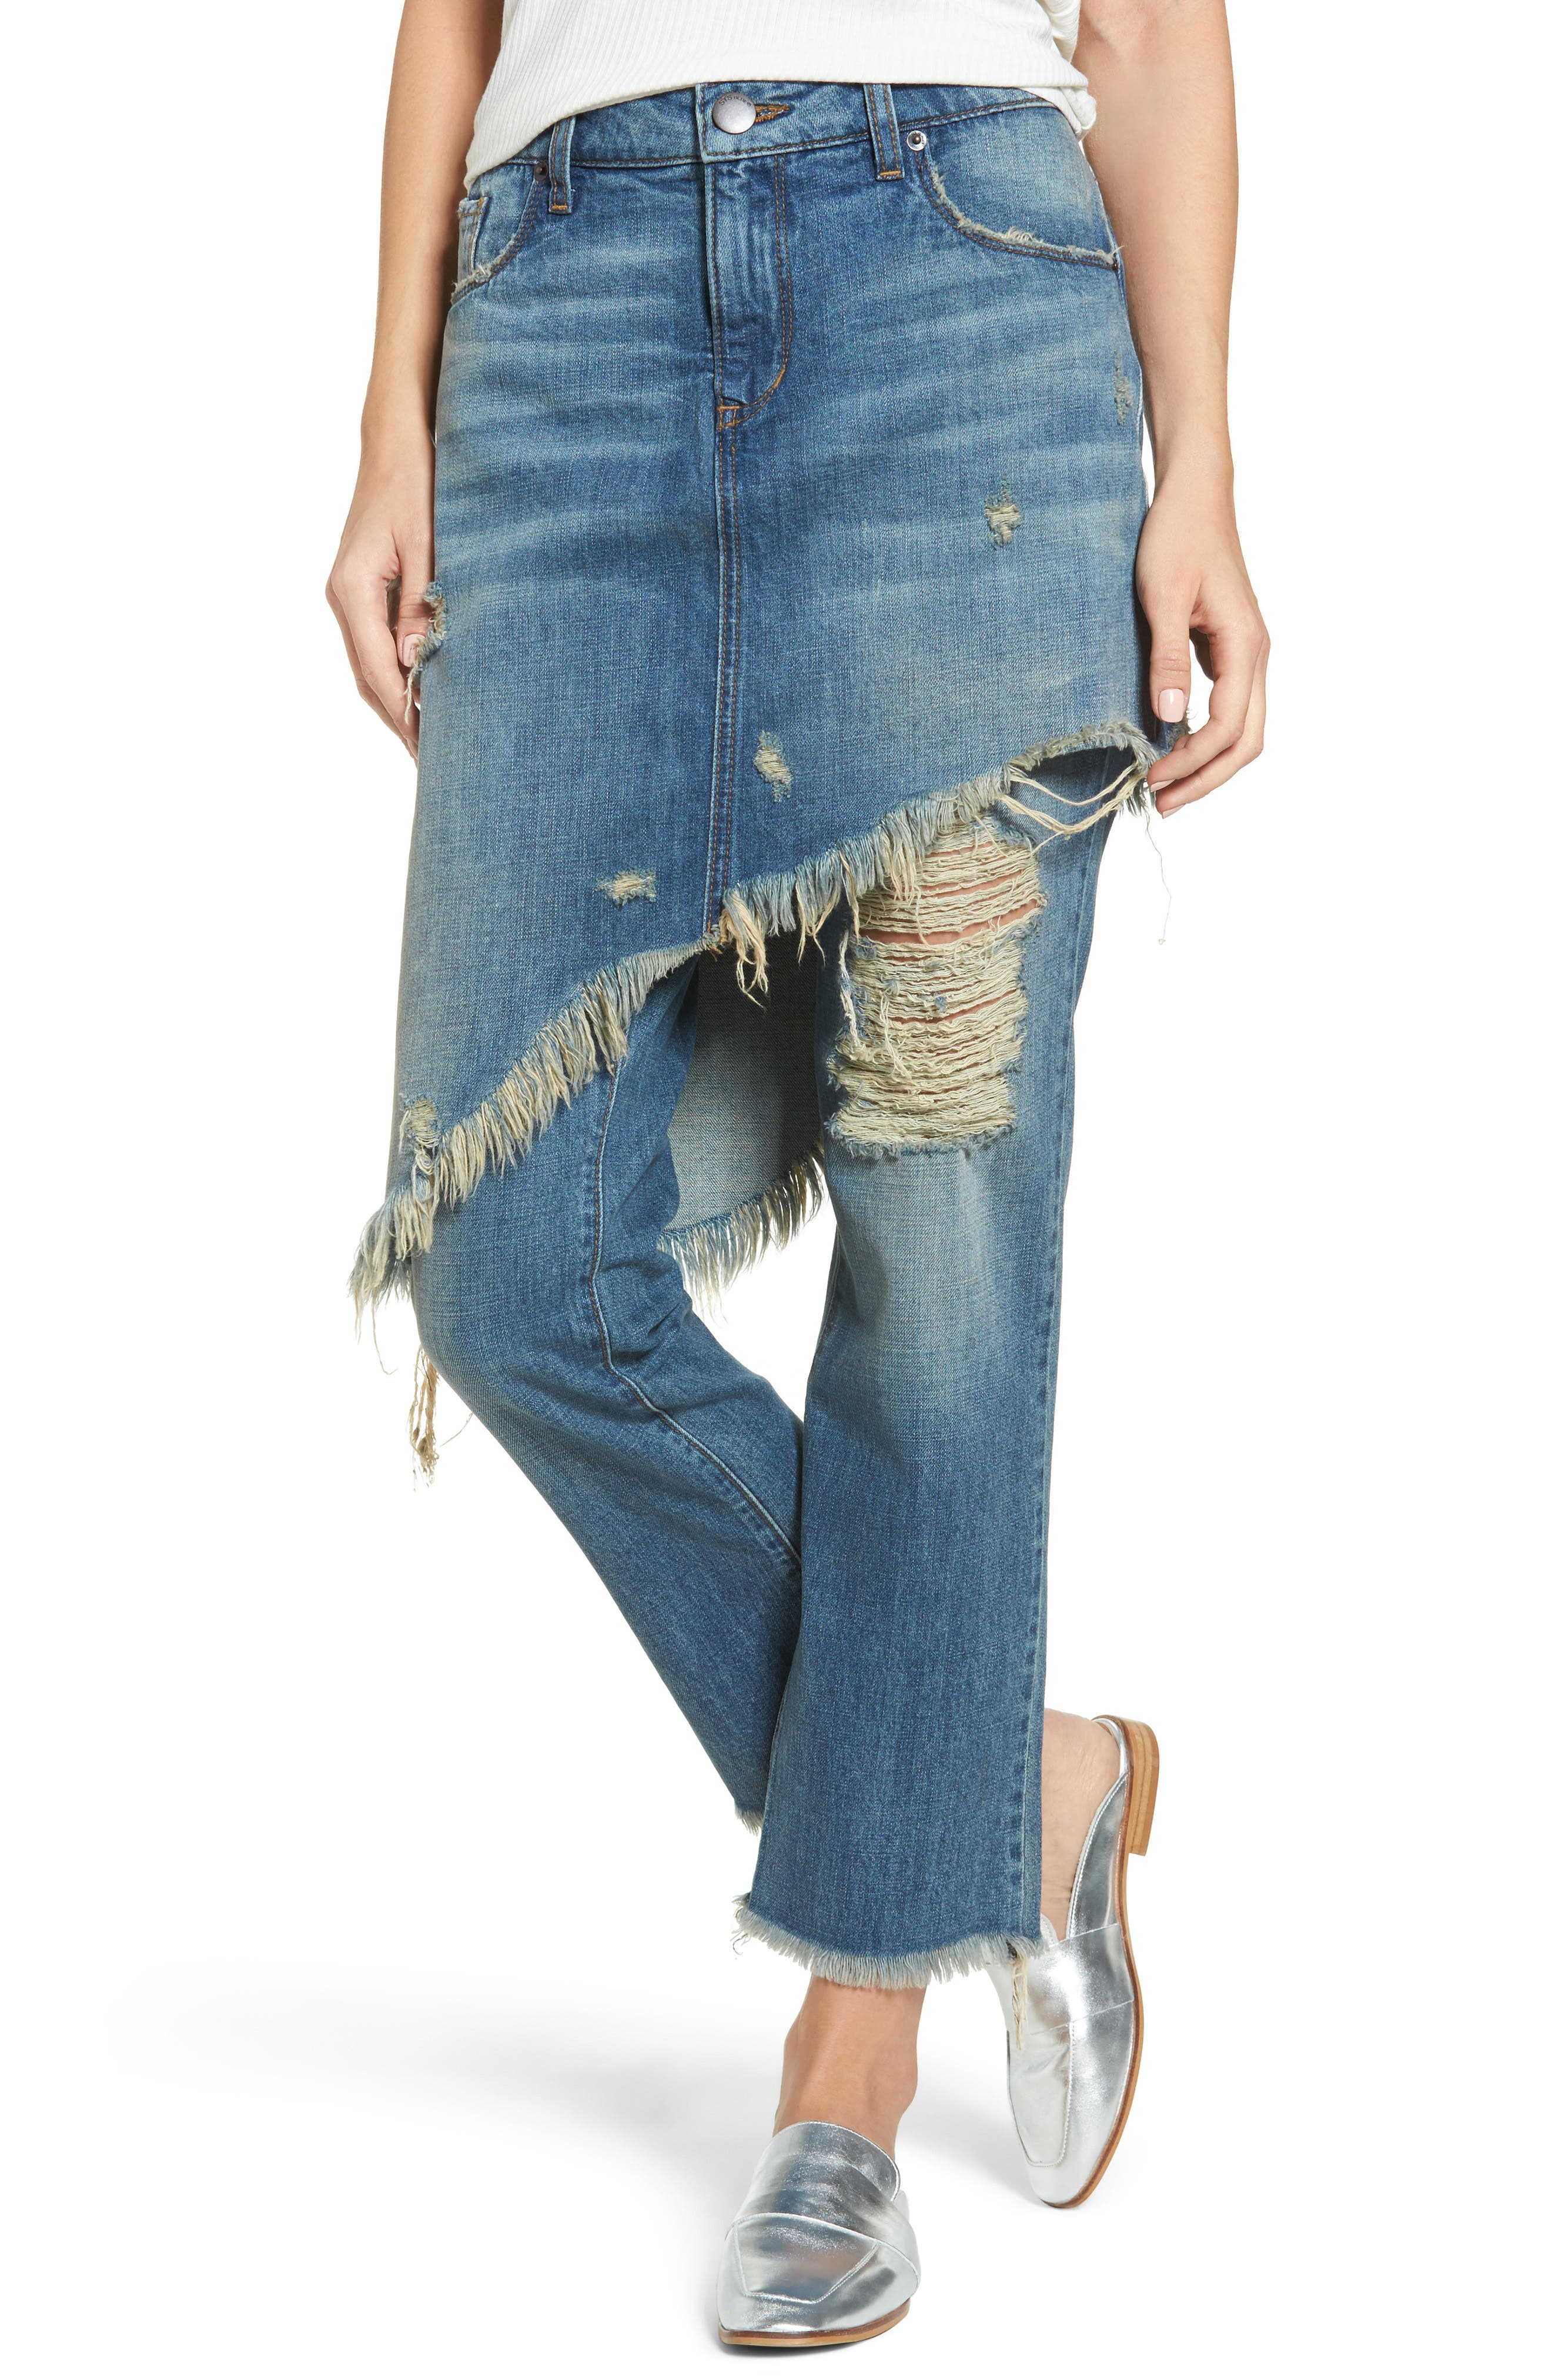 Alternate Image 1 Selected - STS Blue Layered Ripped Skirt Jeans